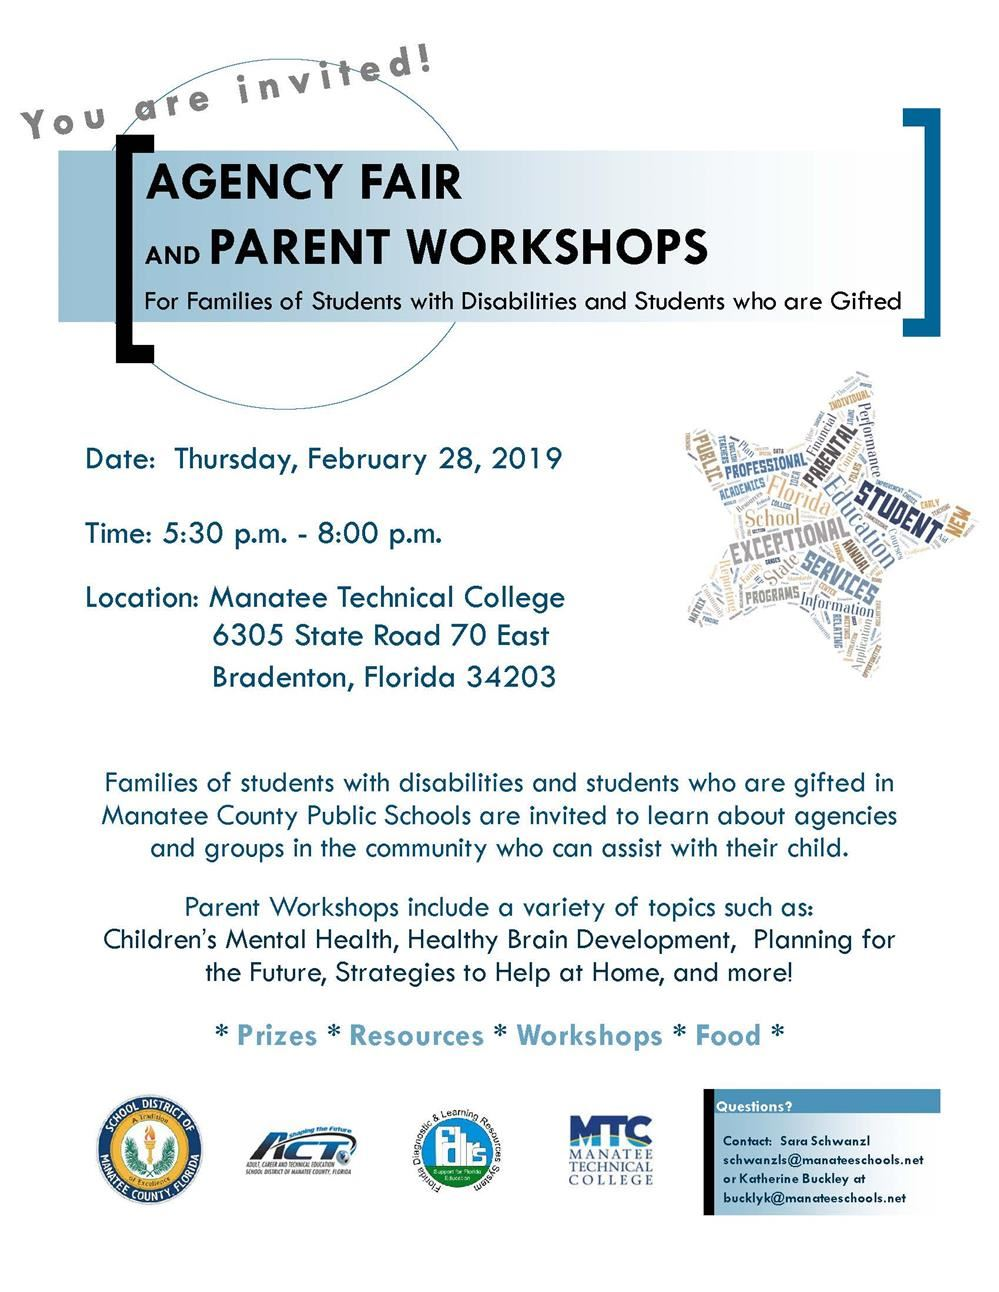 2019 ESE Agency Fair and Parent Workshop